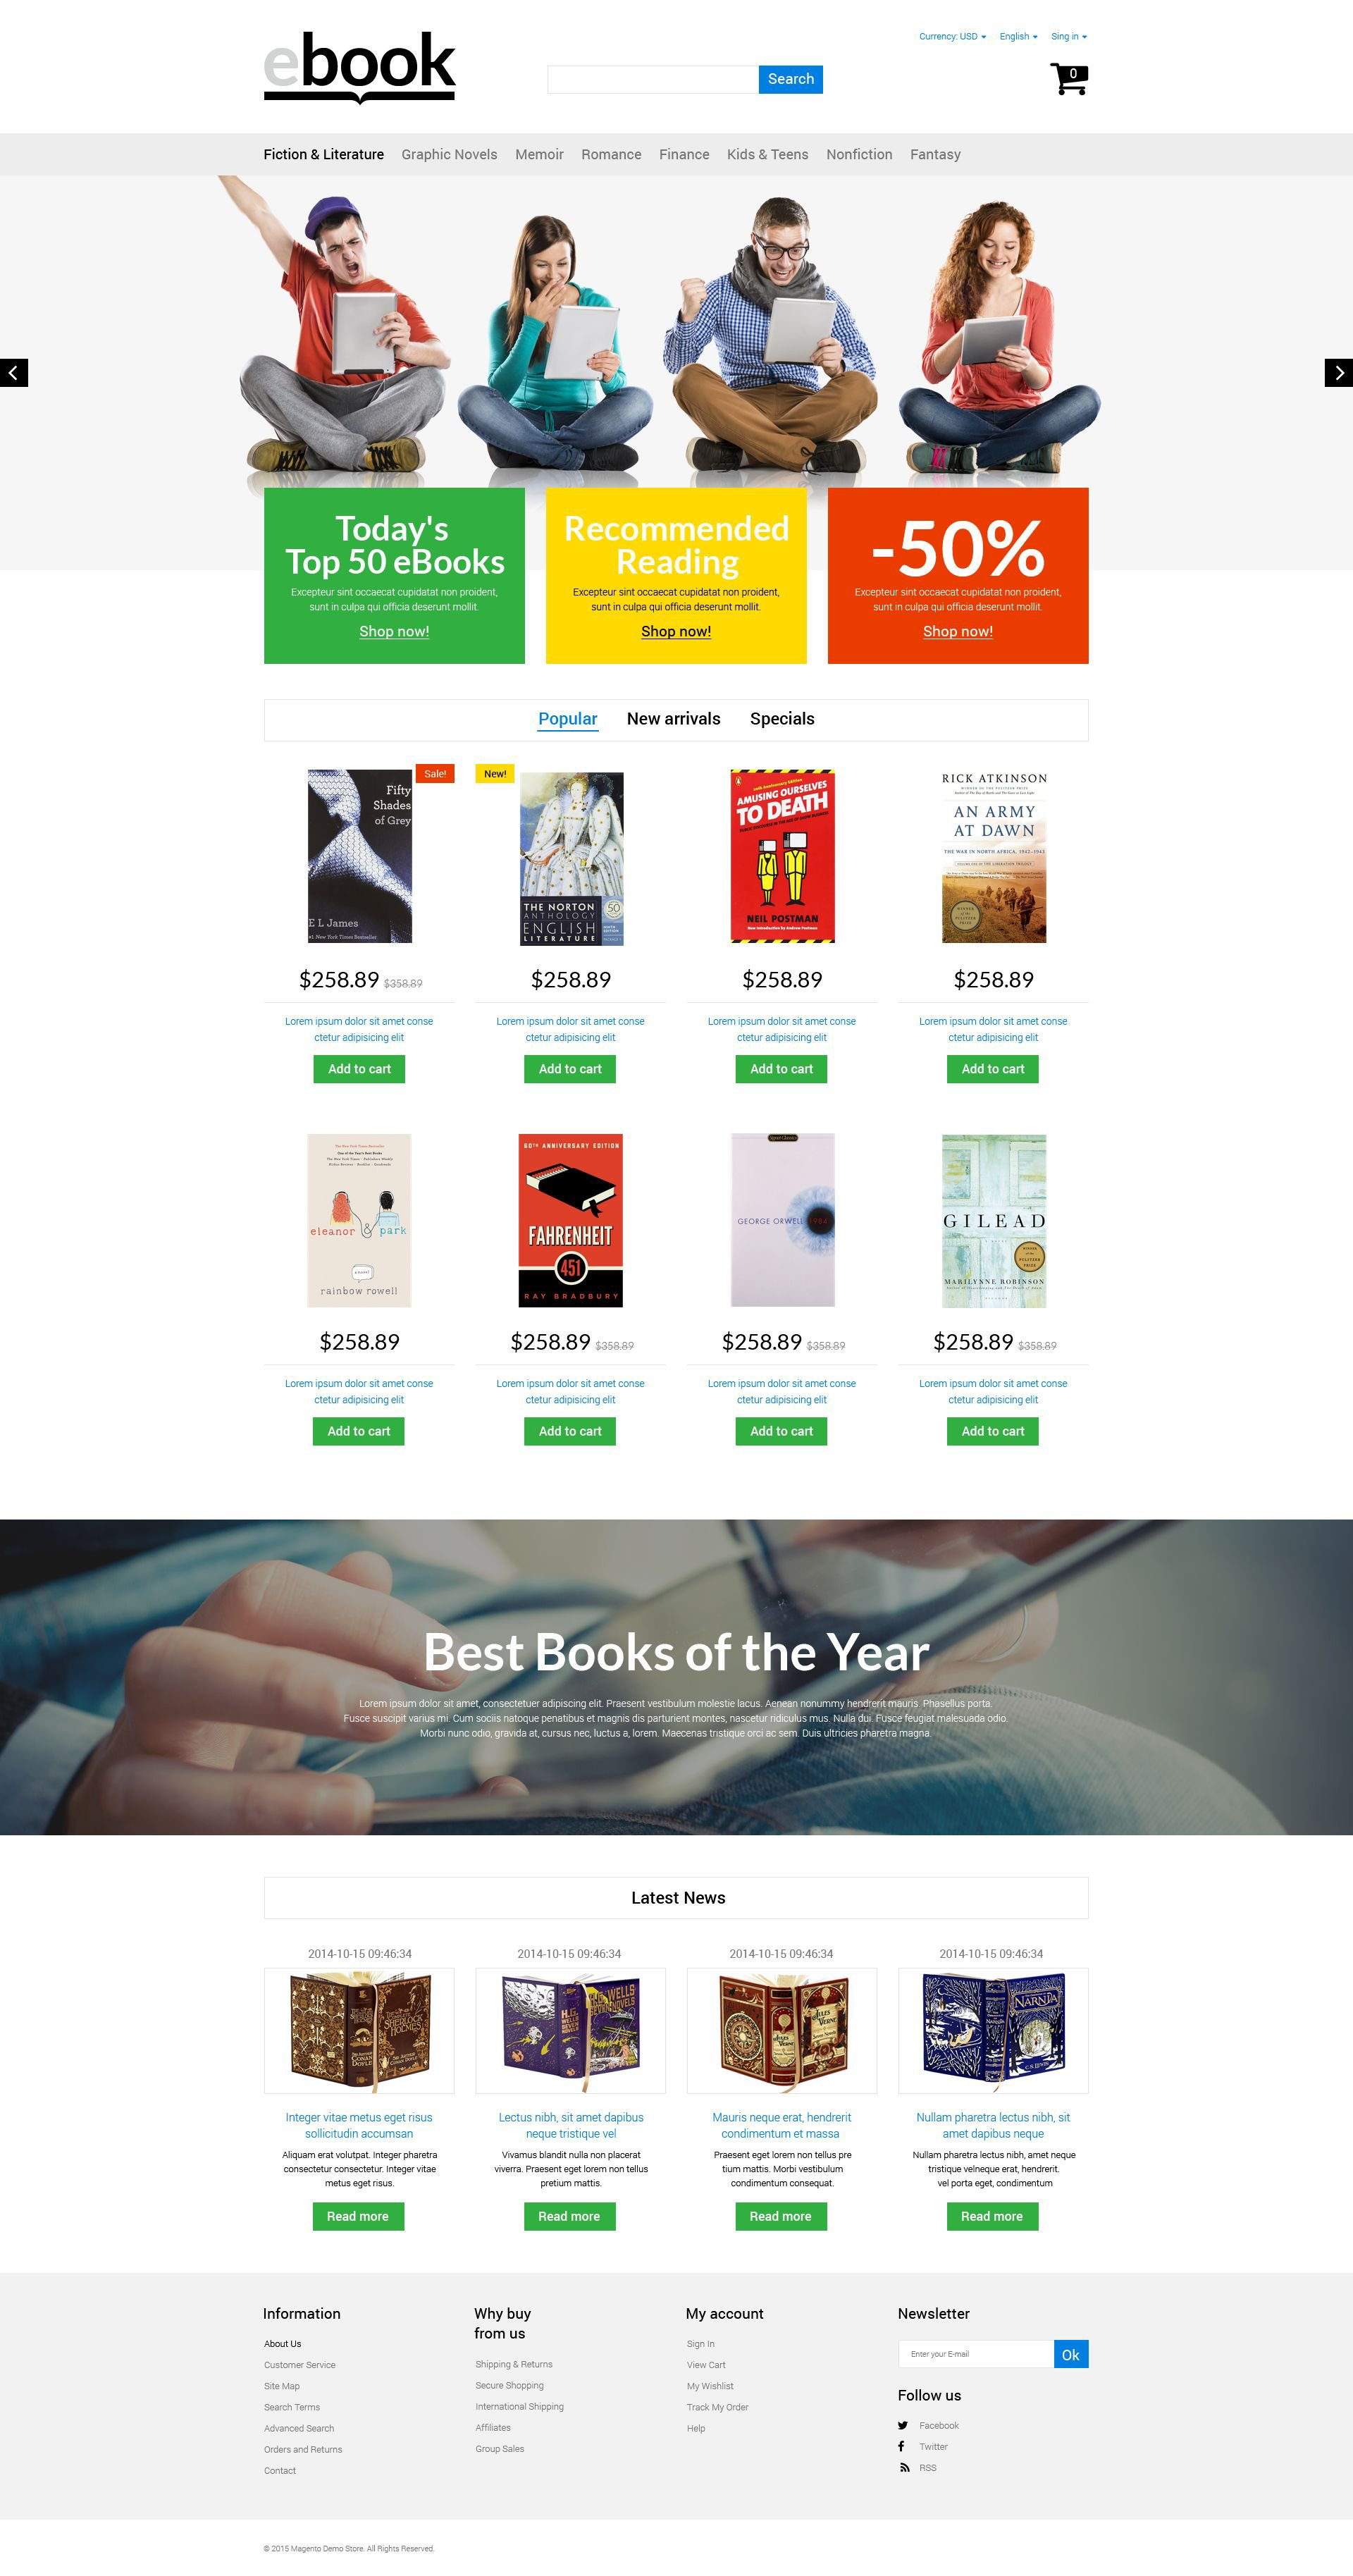 eBook PrestaShop Theme - screenshot